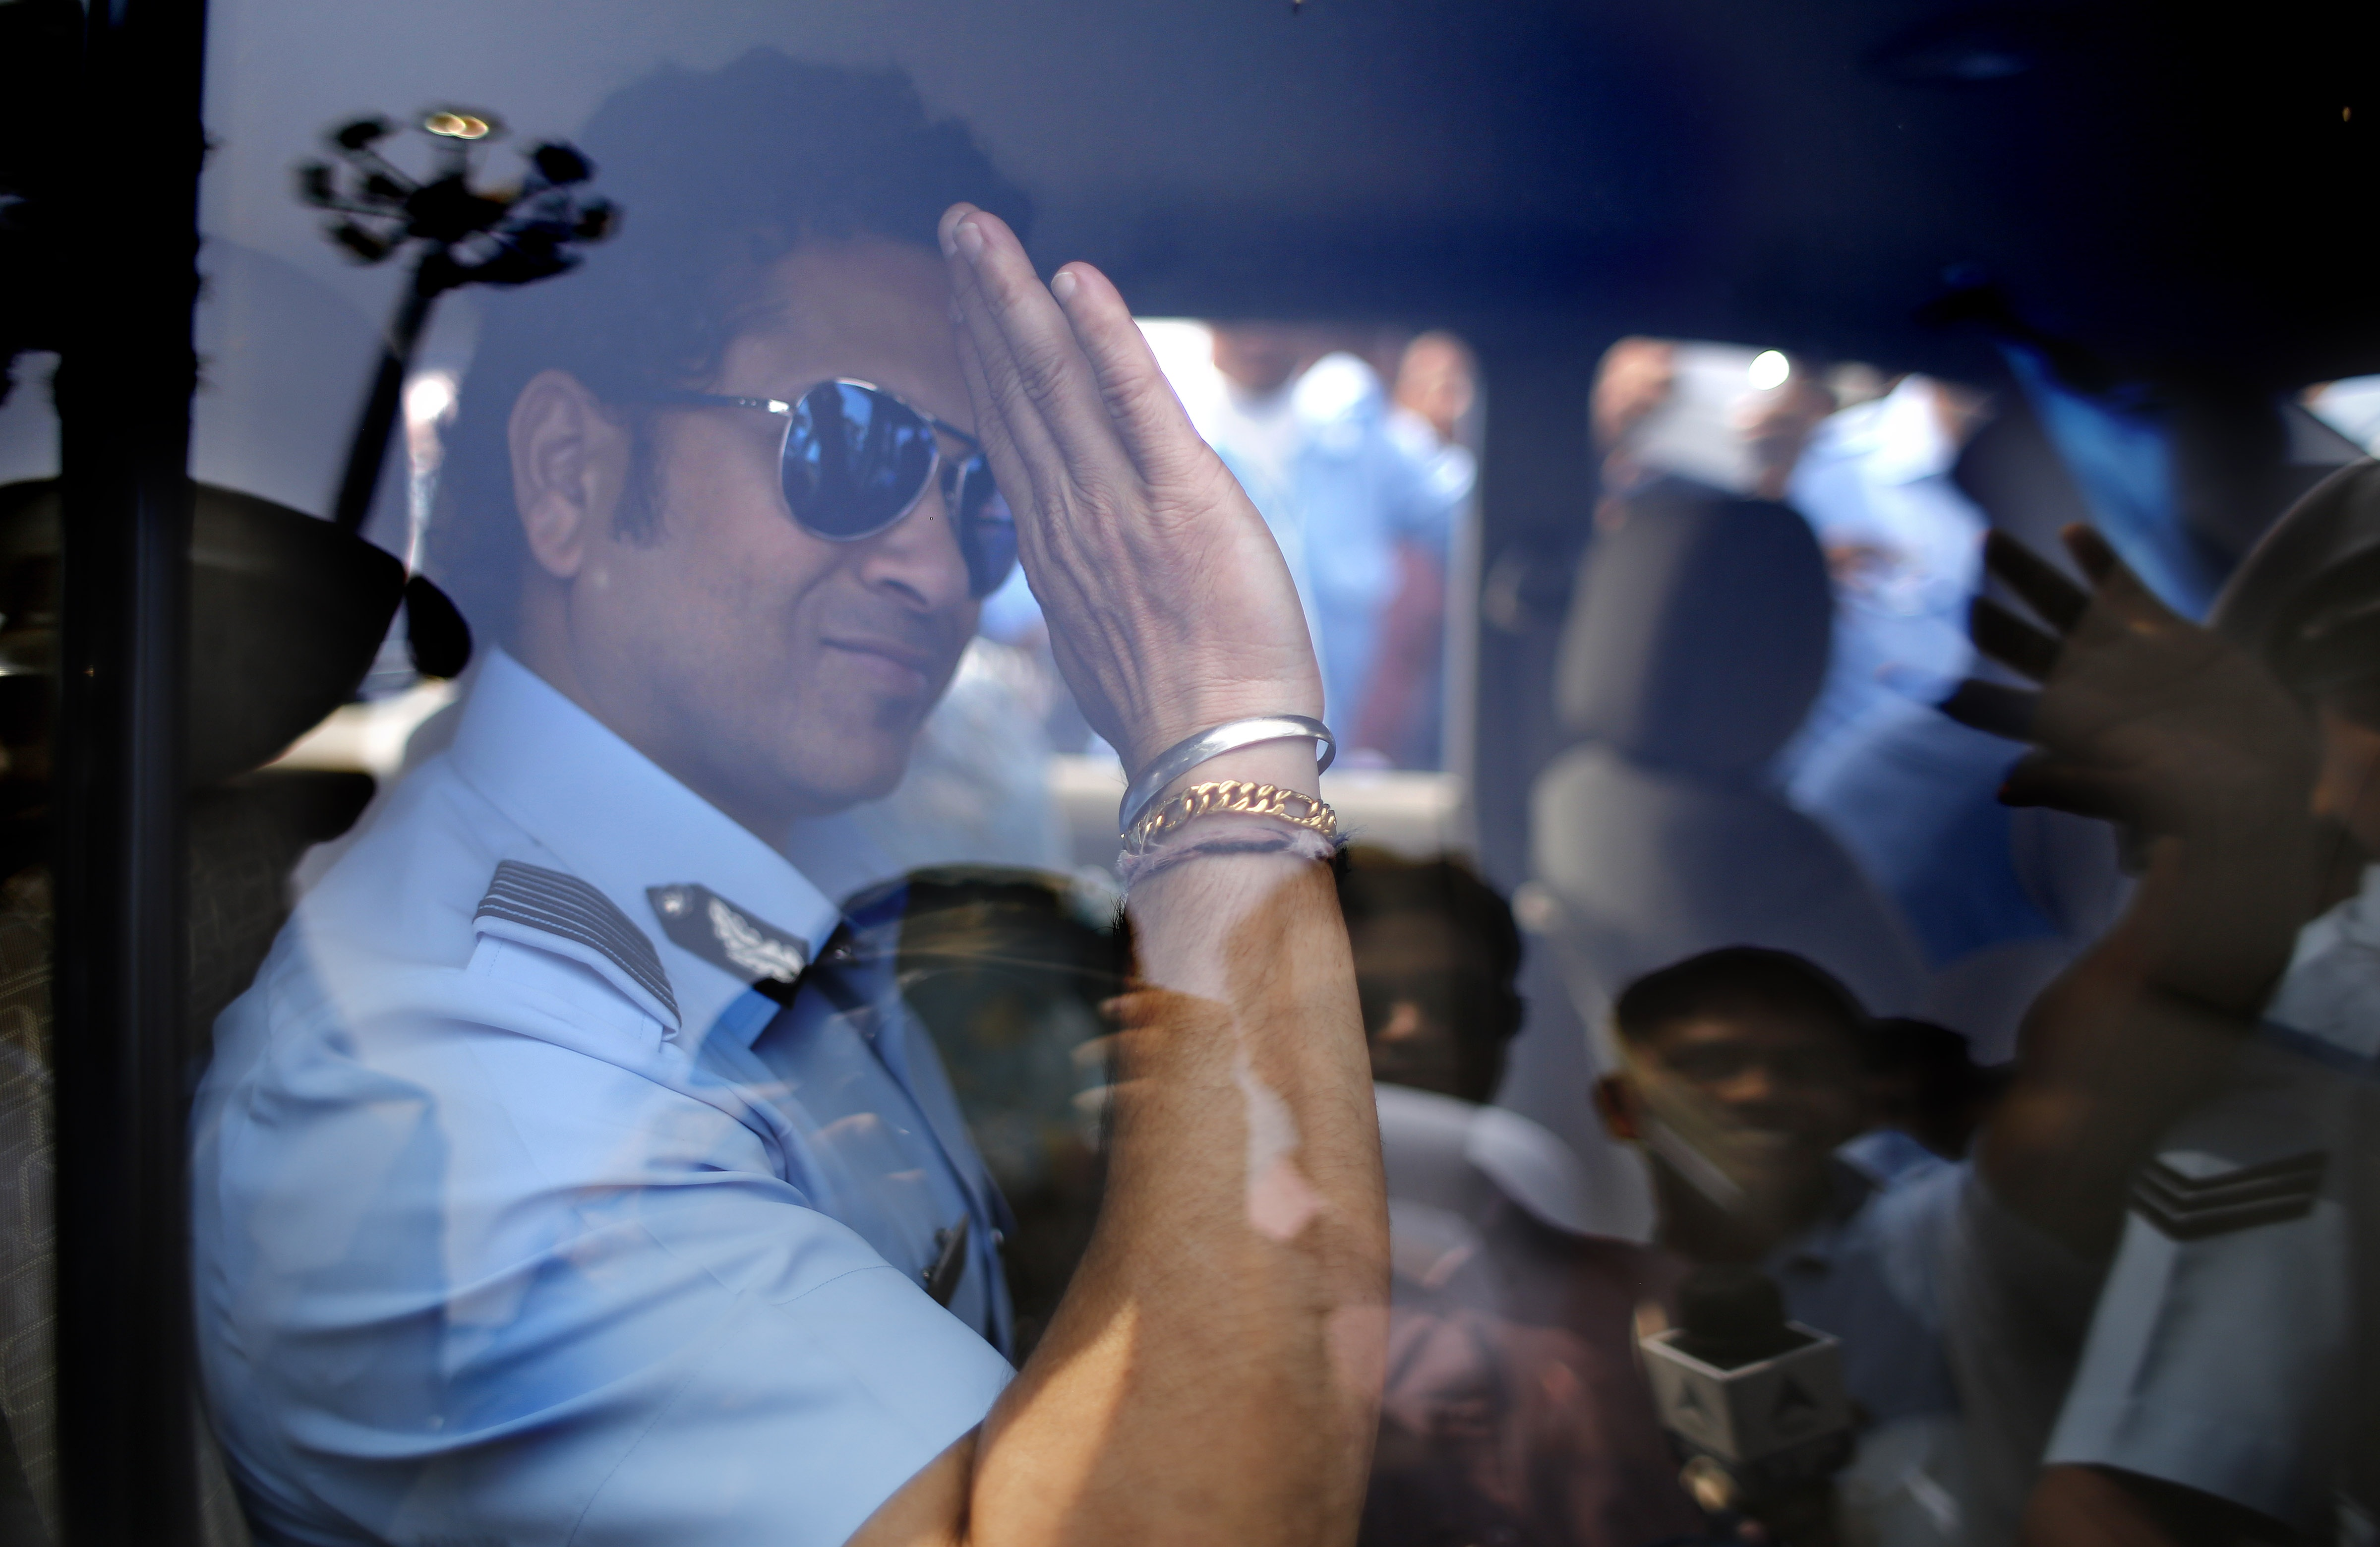 Sachin Tendulkar waves from a car on Oct. 8, 2014 in Hindon near New Delhi, India.